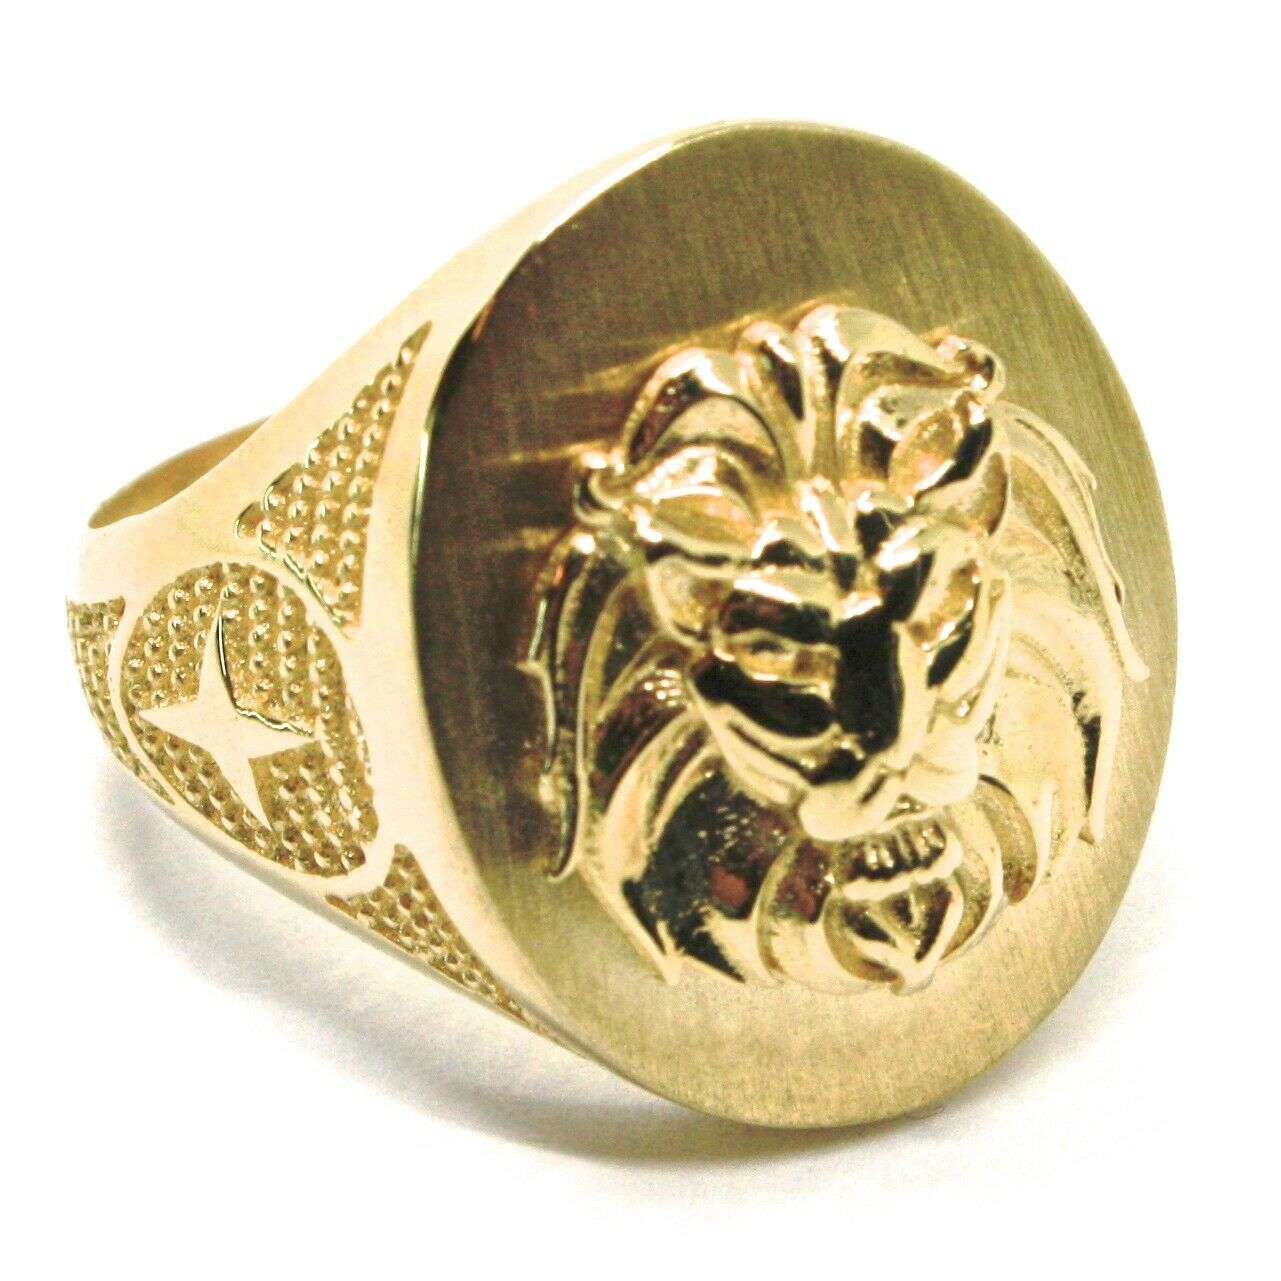 SOLID 18K YELLOW GOLD BAND MAN RING, LION HEAD IN RELIEF, OVAL, VERY DETAILED